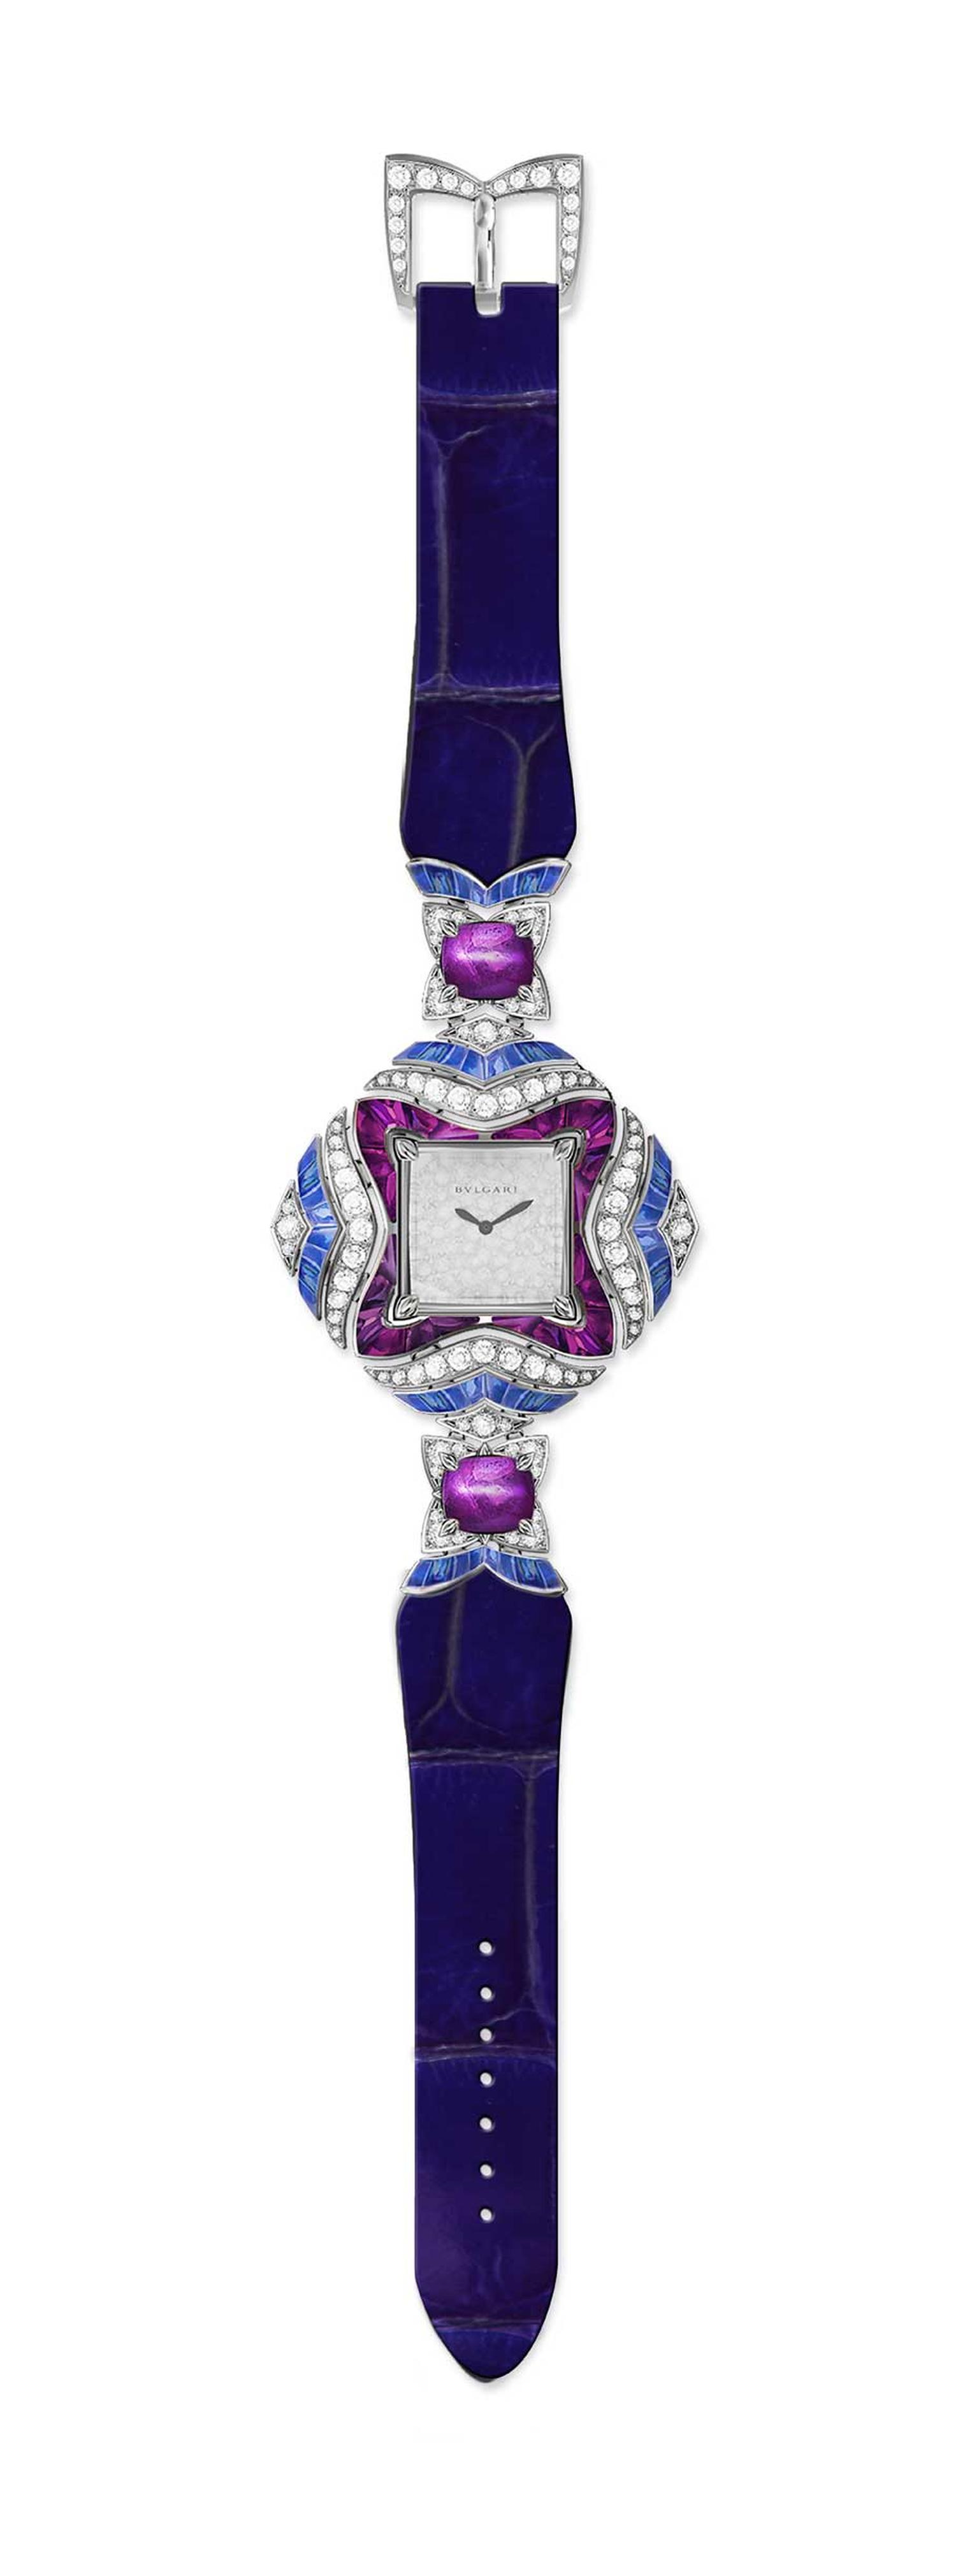 Bulgari Mvsa high jewellery watch with blue and pink sapphires and diamonds.